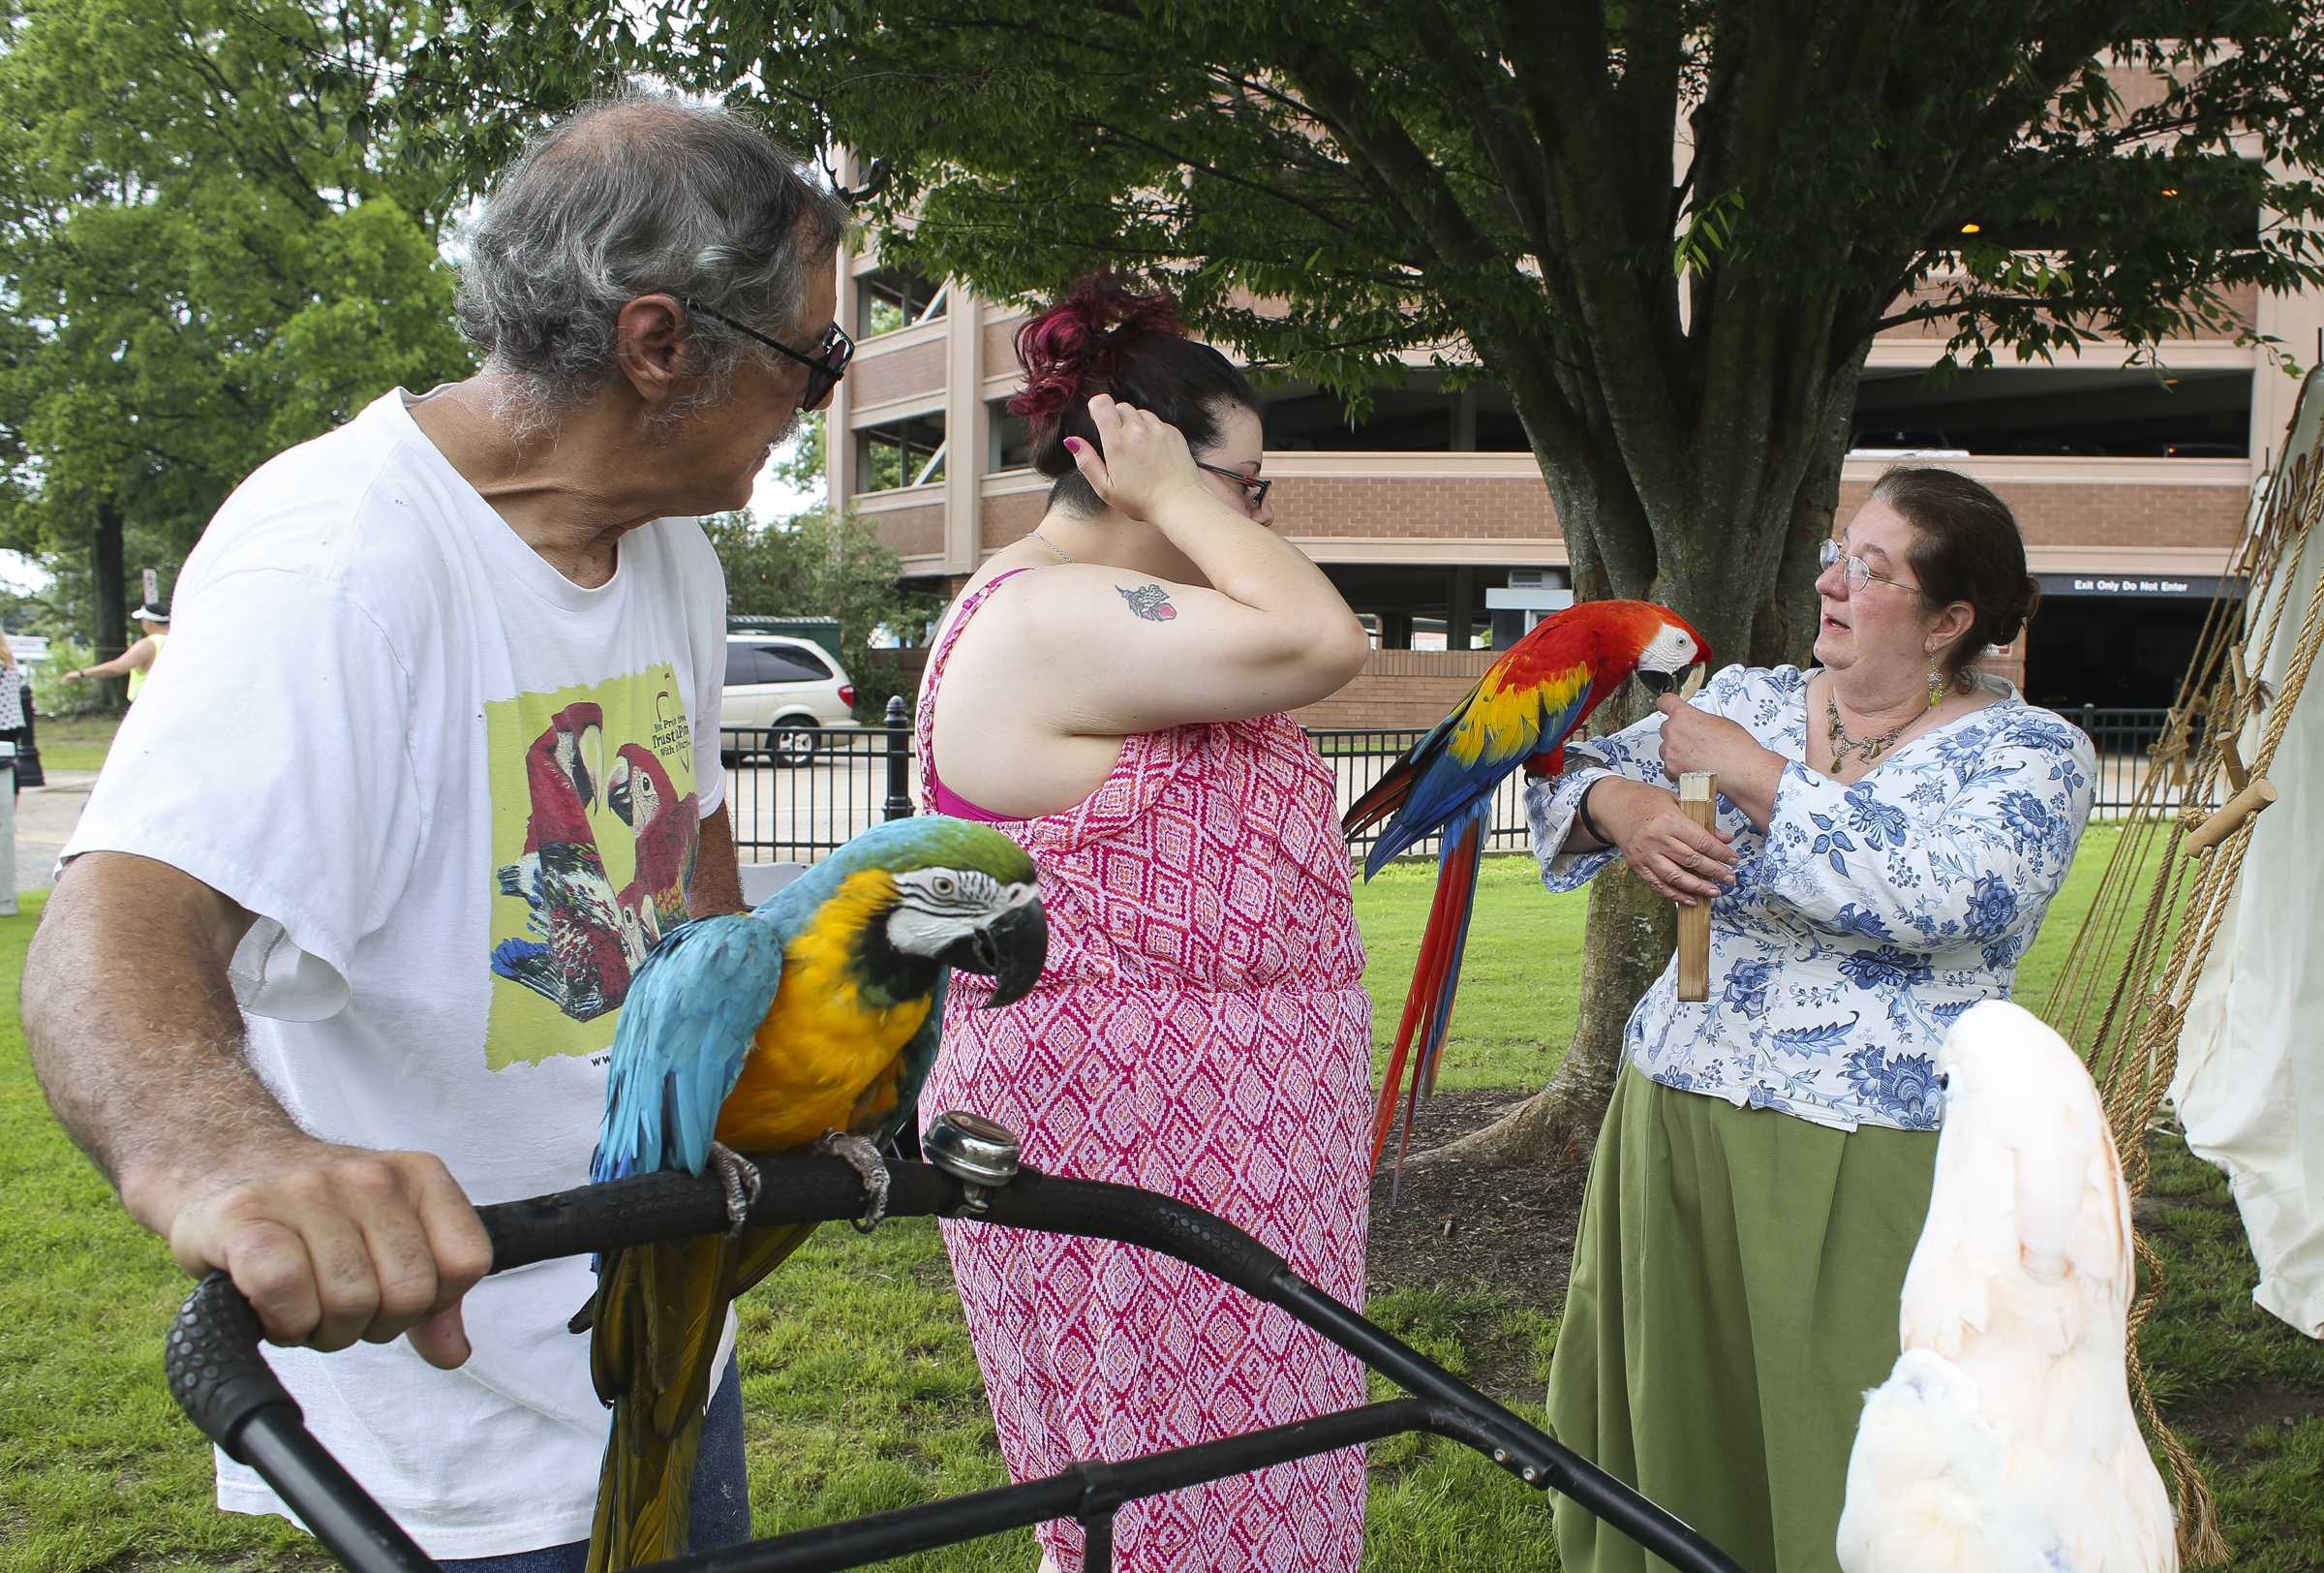 From left, Hampton residents Gene Sutter, Julie Sutter lets owner Laura Arnette of Cover dem Bones pets the Sutter's parrots Tattoo, Skittles and Maxwell at the   Blackbeard Pirate Festival, Hampton, Saturday, June 4, 2016.   (Sonya Paclob / Special to the Daily Press)